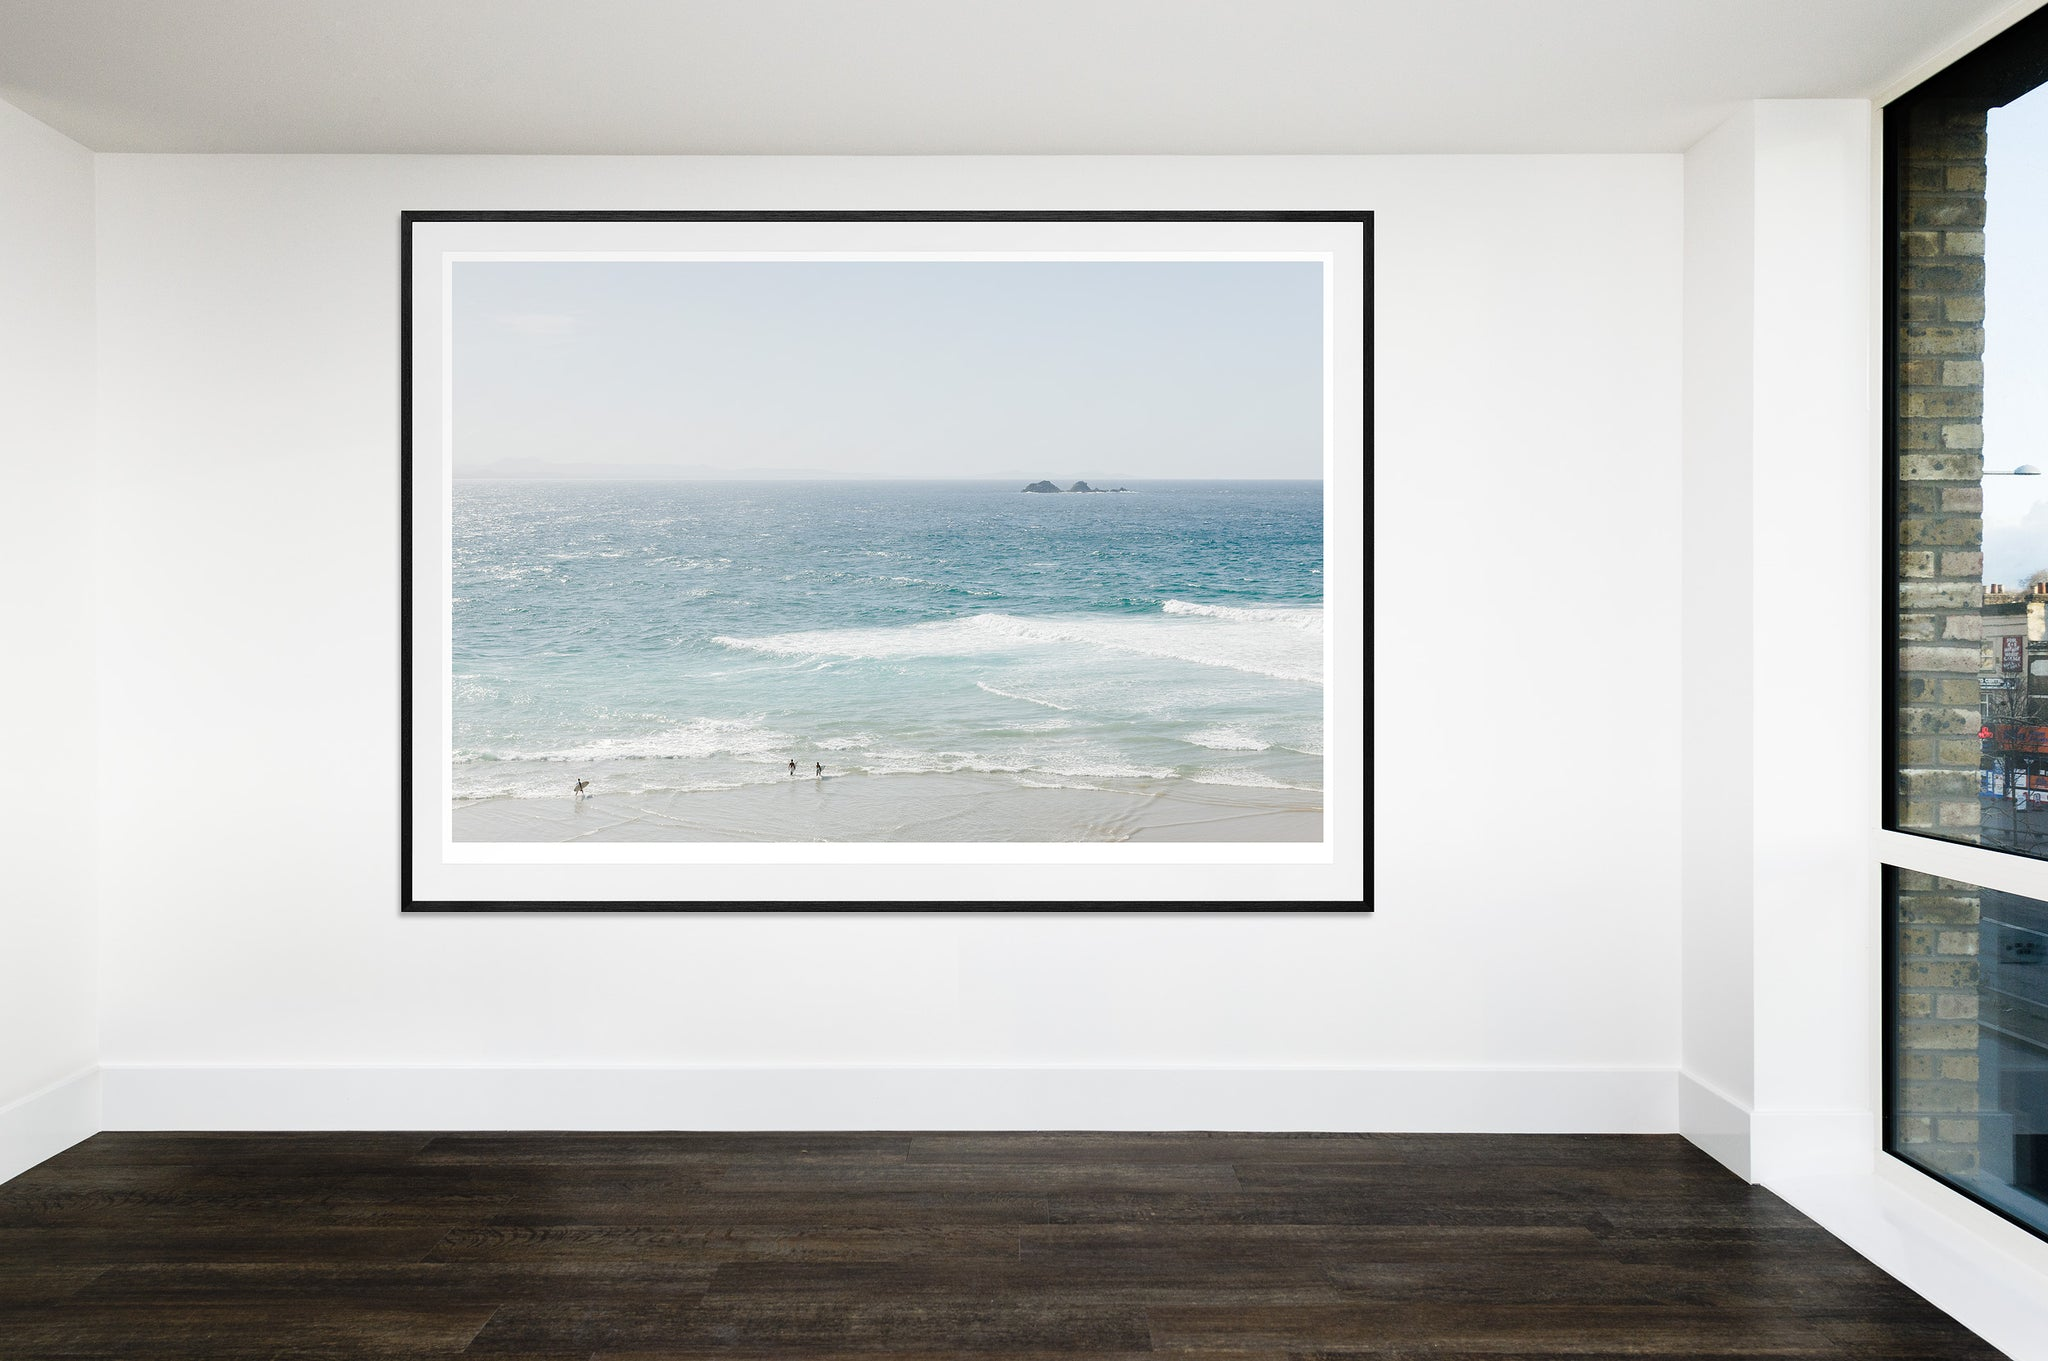 Surf Time at Wategos Beach (203x152cm)